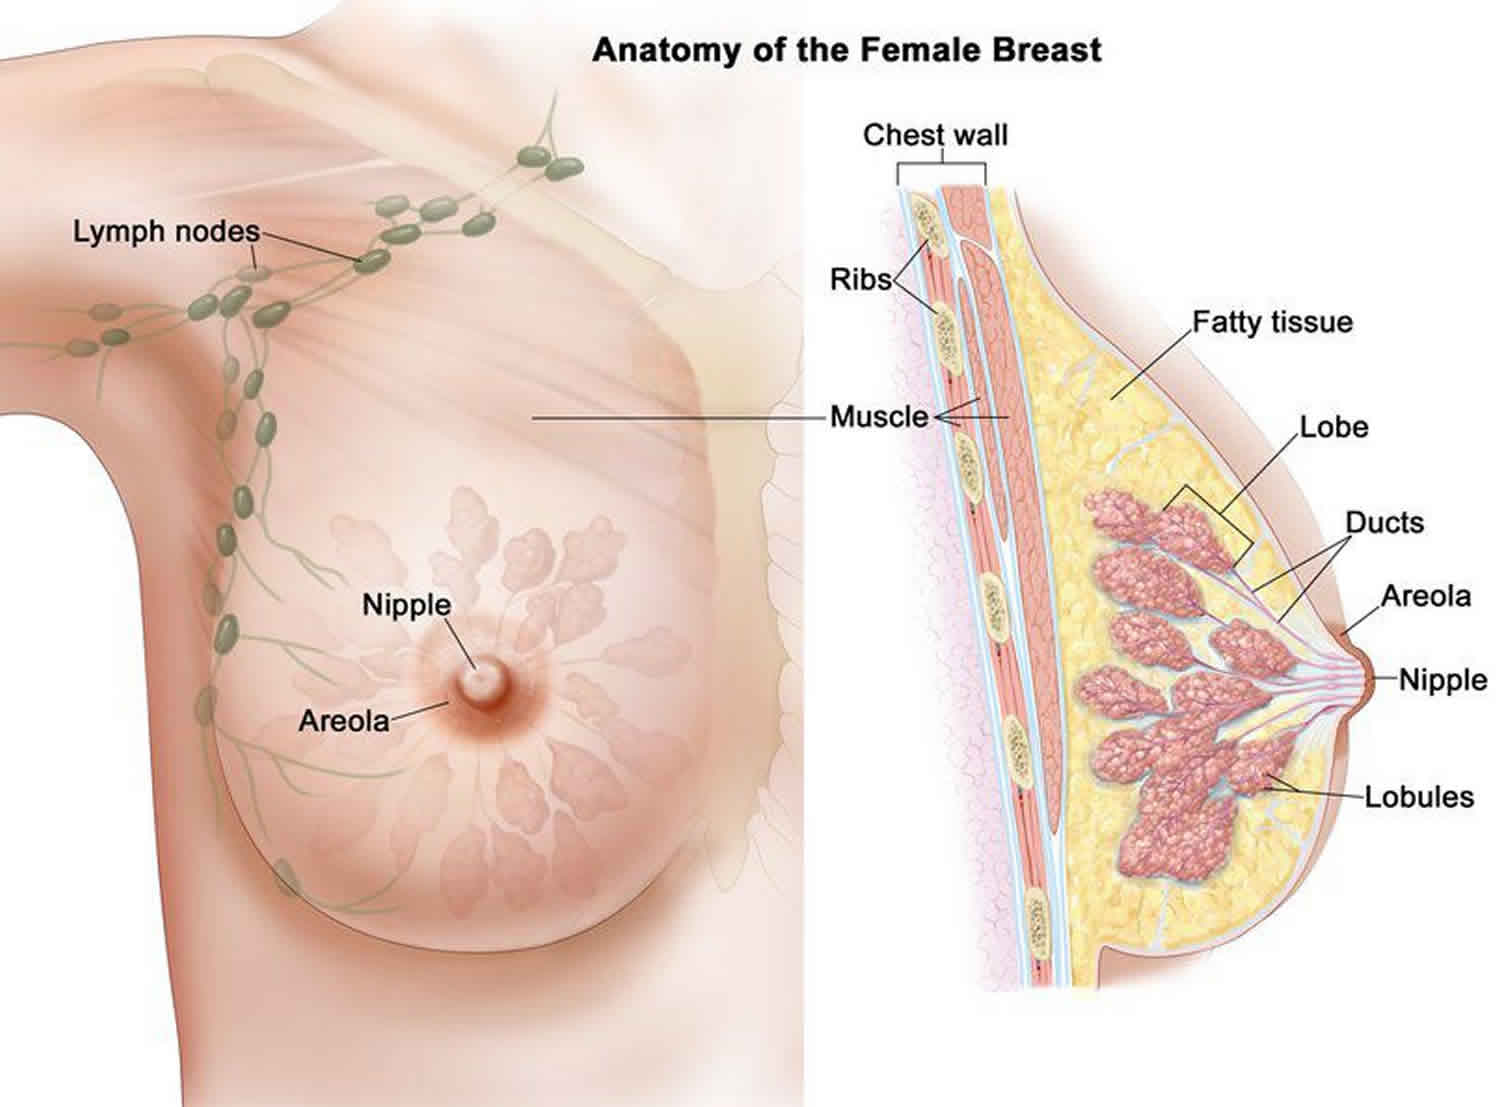 papilloma in the breast duct)